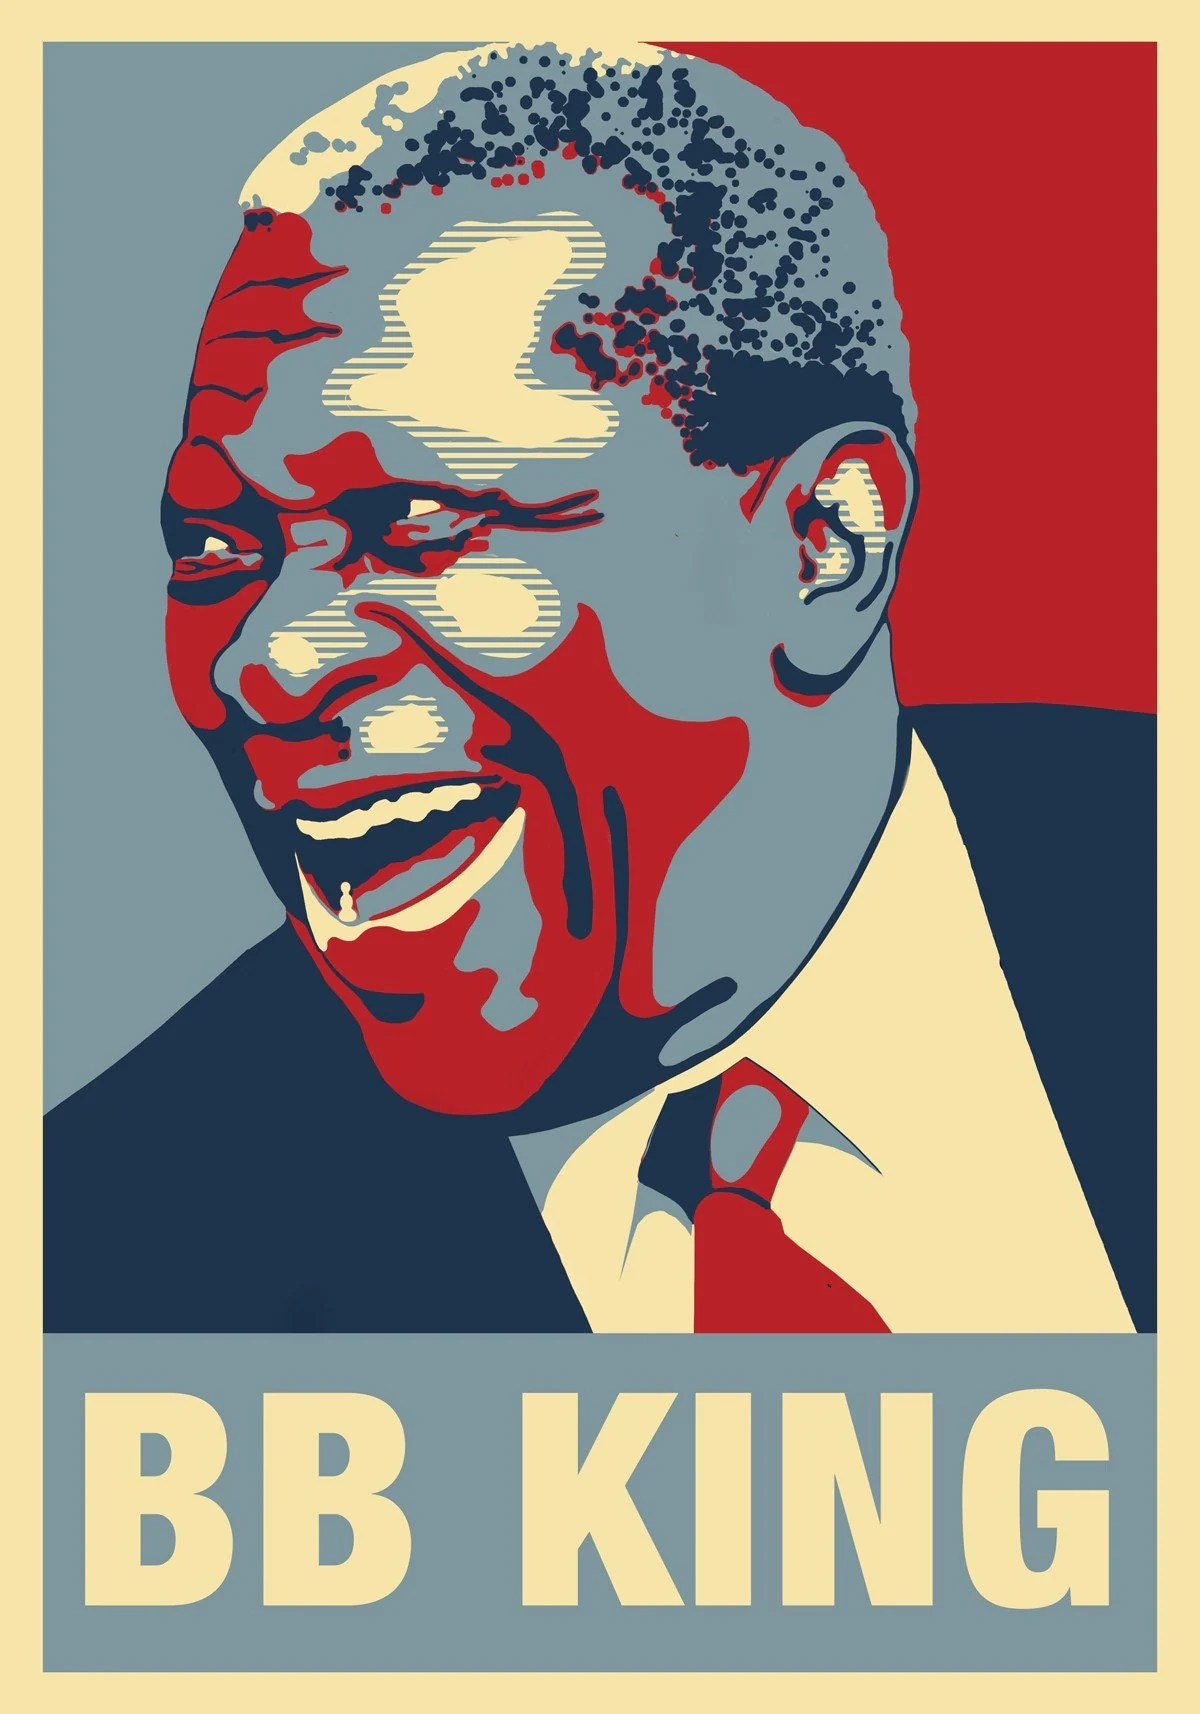 B B King Blues Man Poster First In Series By Atelierbagatelle